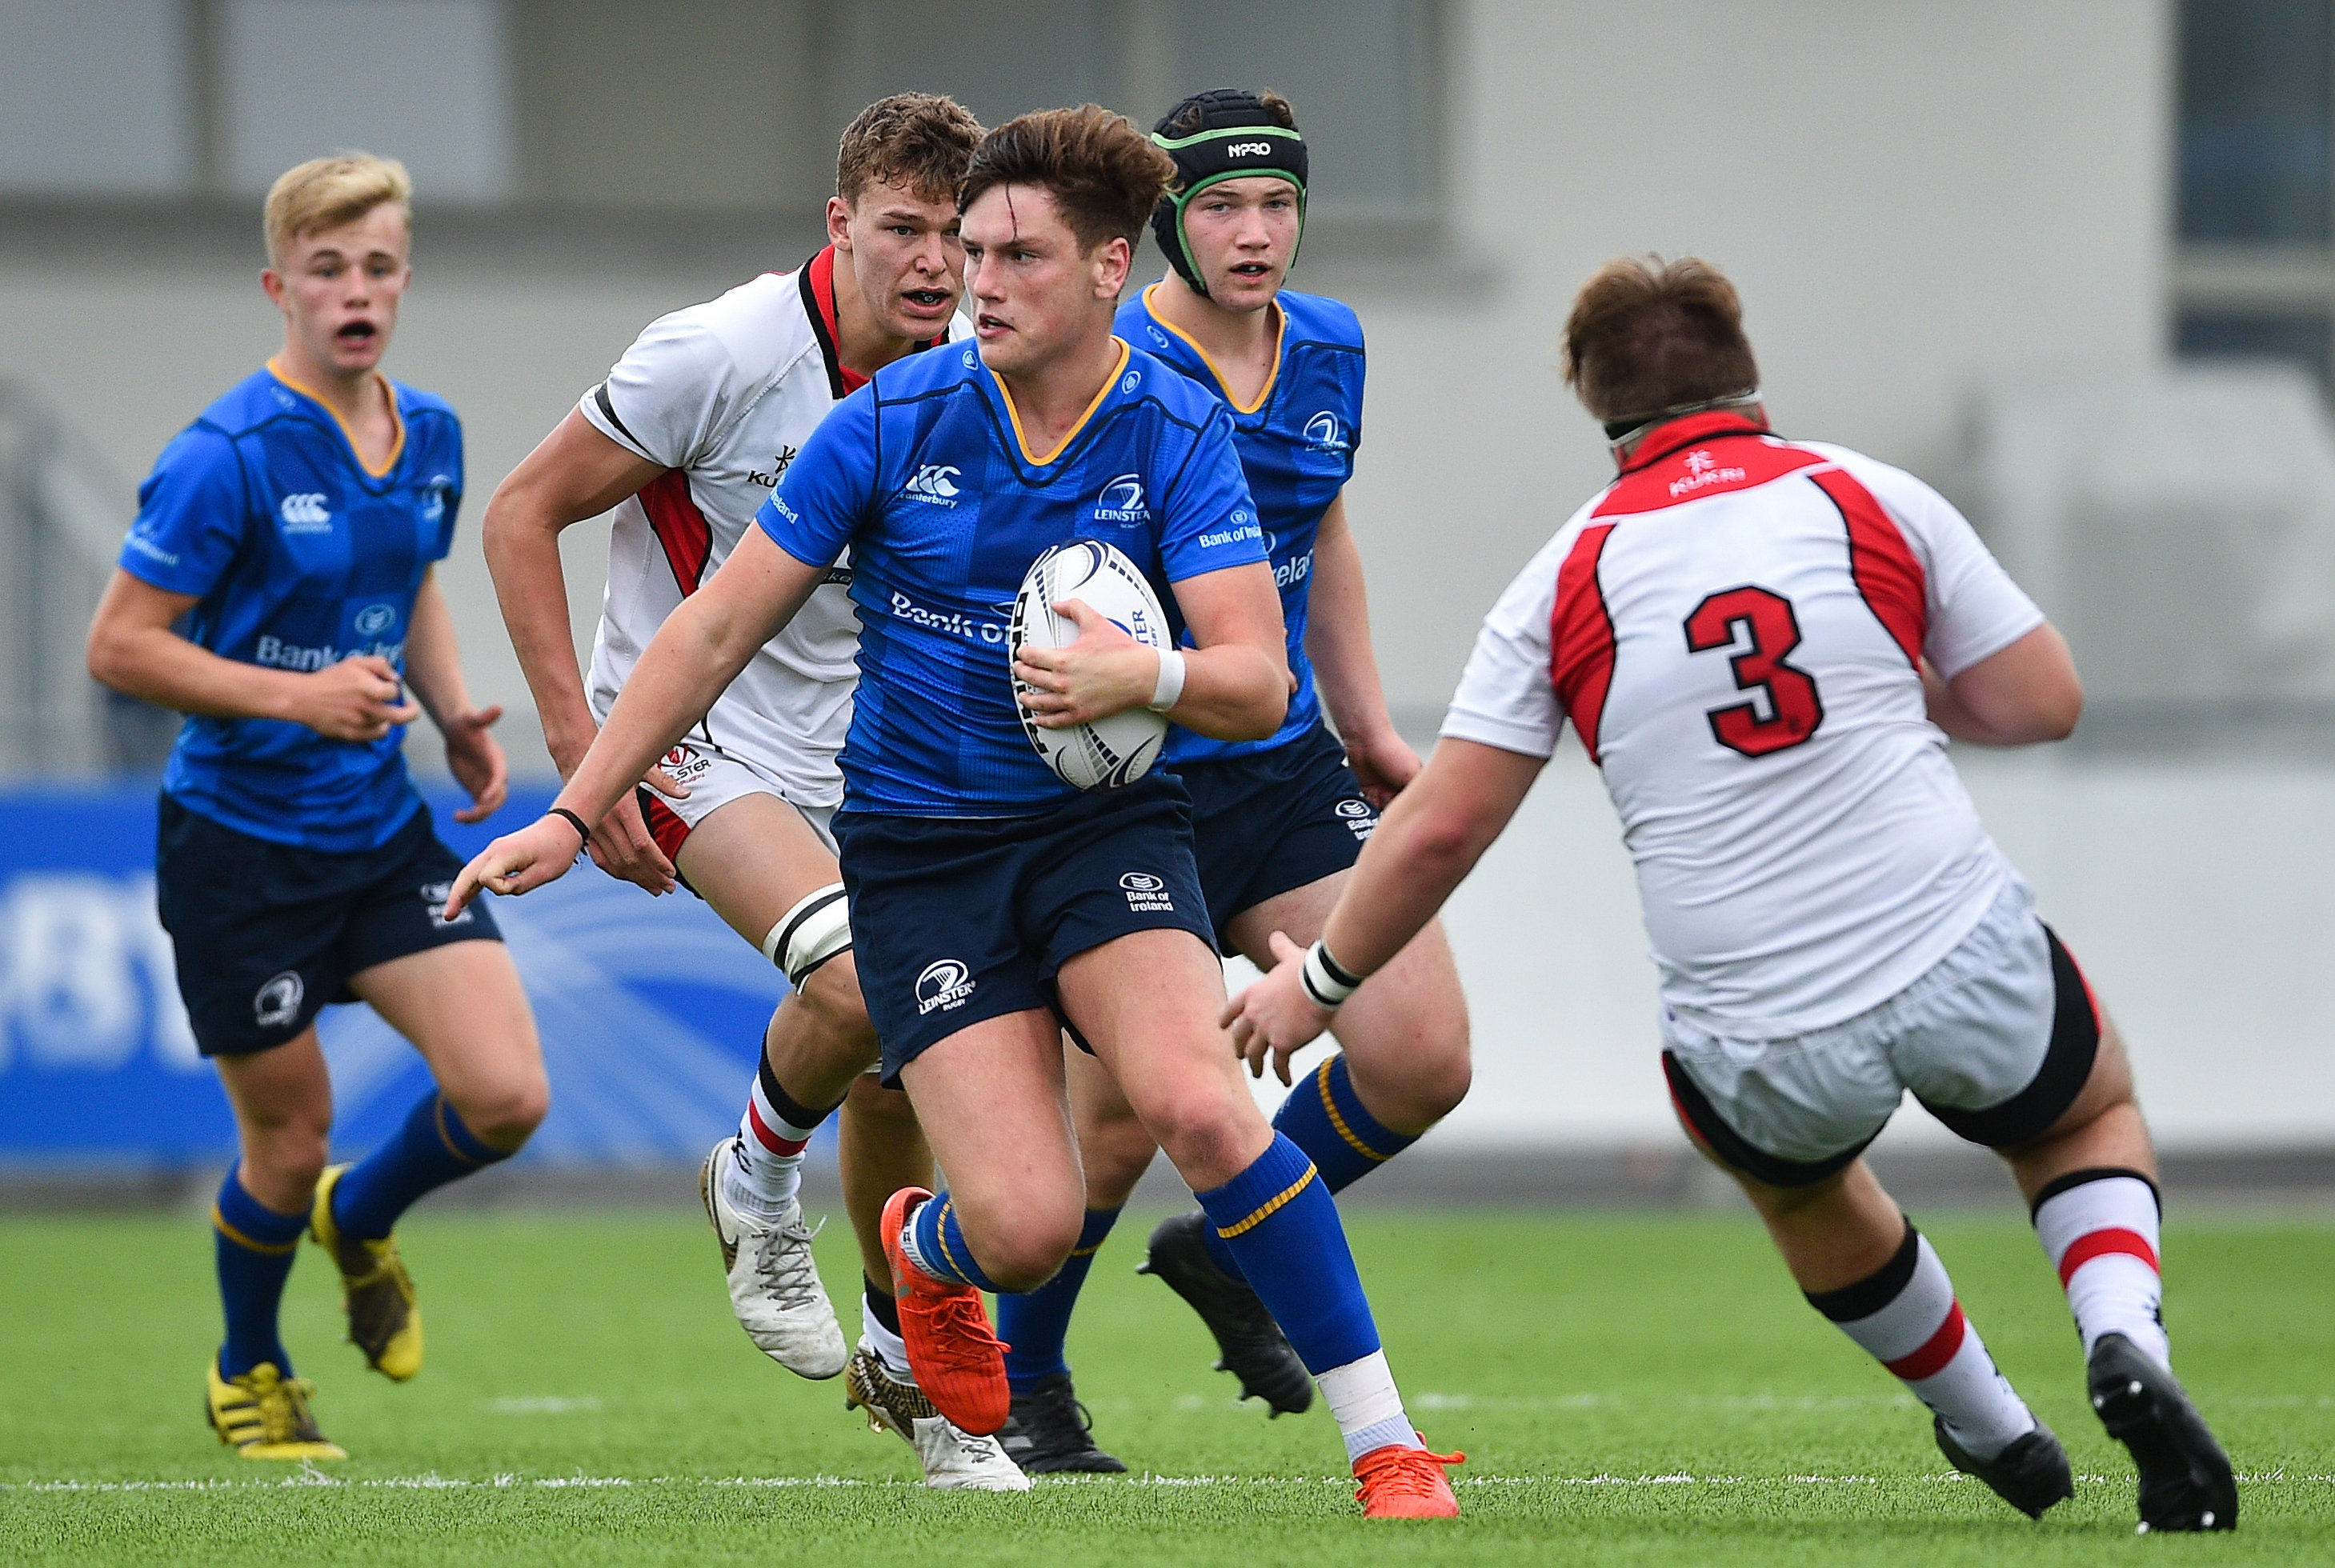 Leinster schools rugby betting line carlsberg bets on russia with baltika move